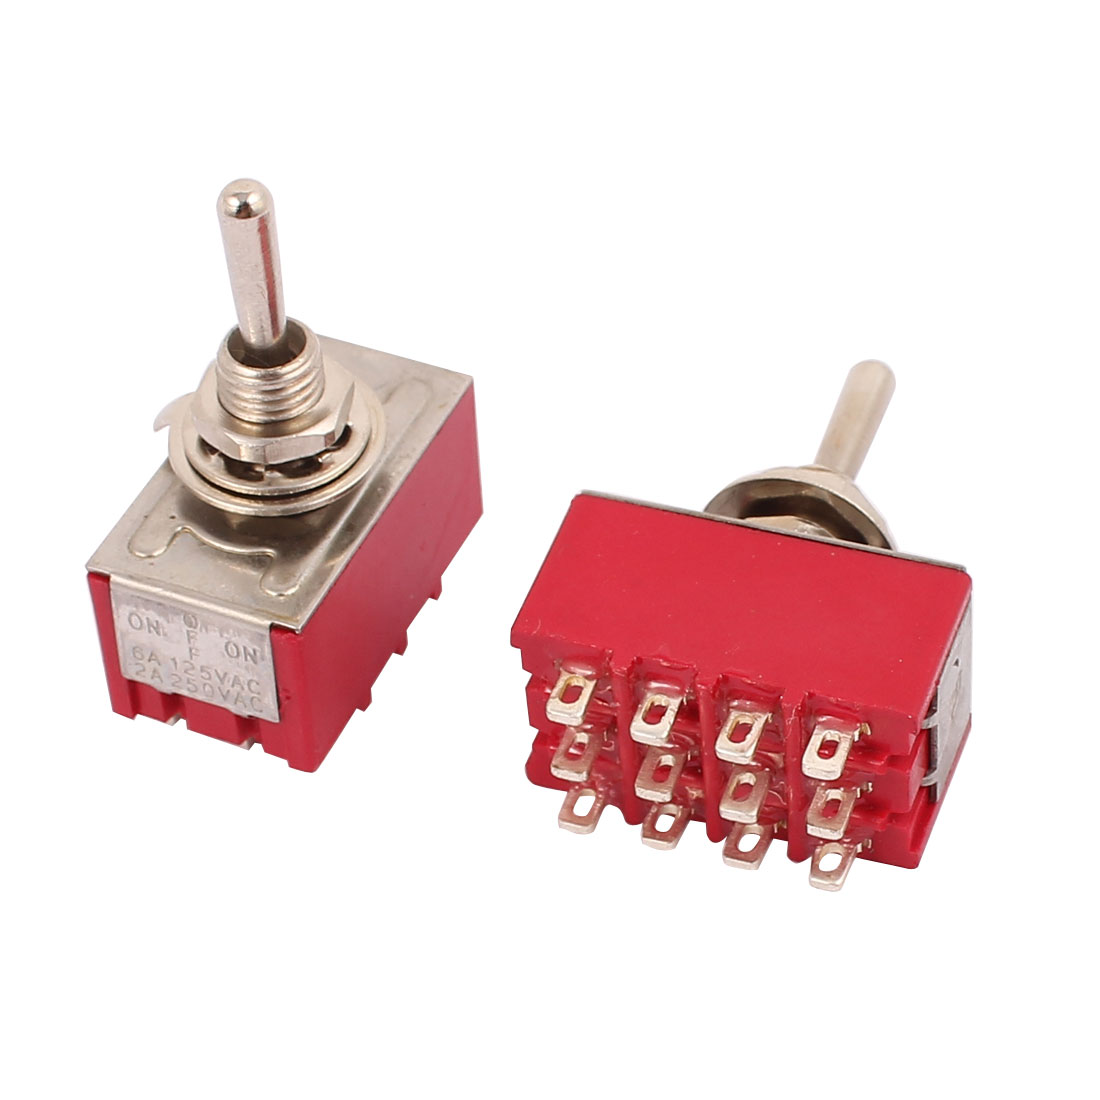 2 Pcs AC 250V 2A 125V 6A 12 Pin 4PDT ON/ON Toggle Switch